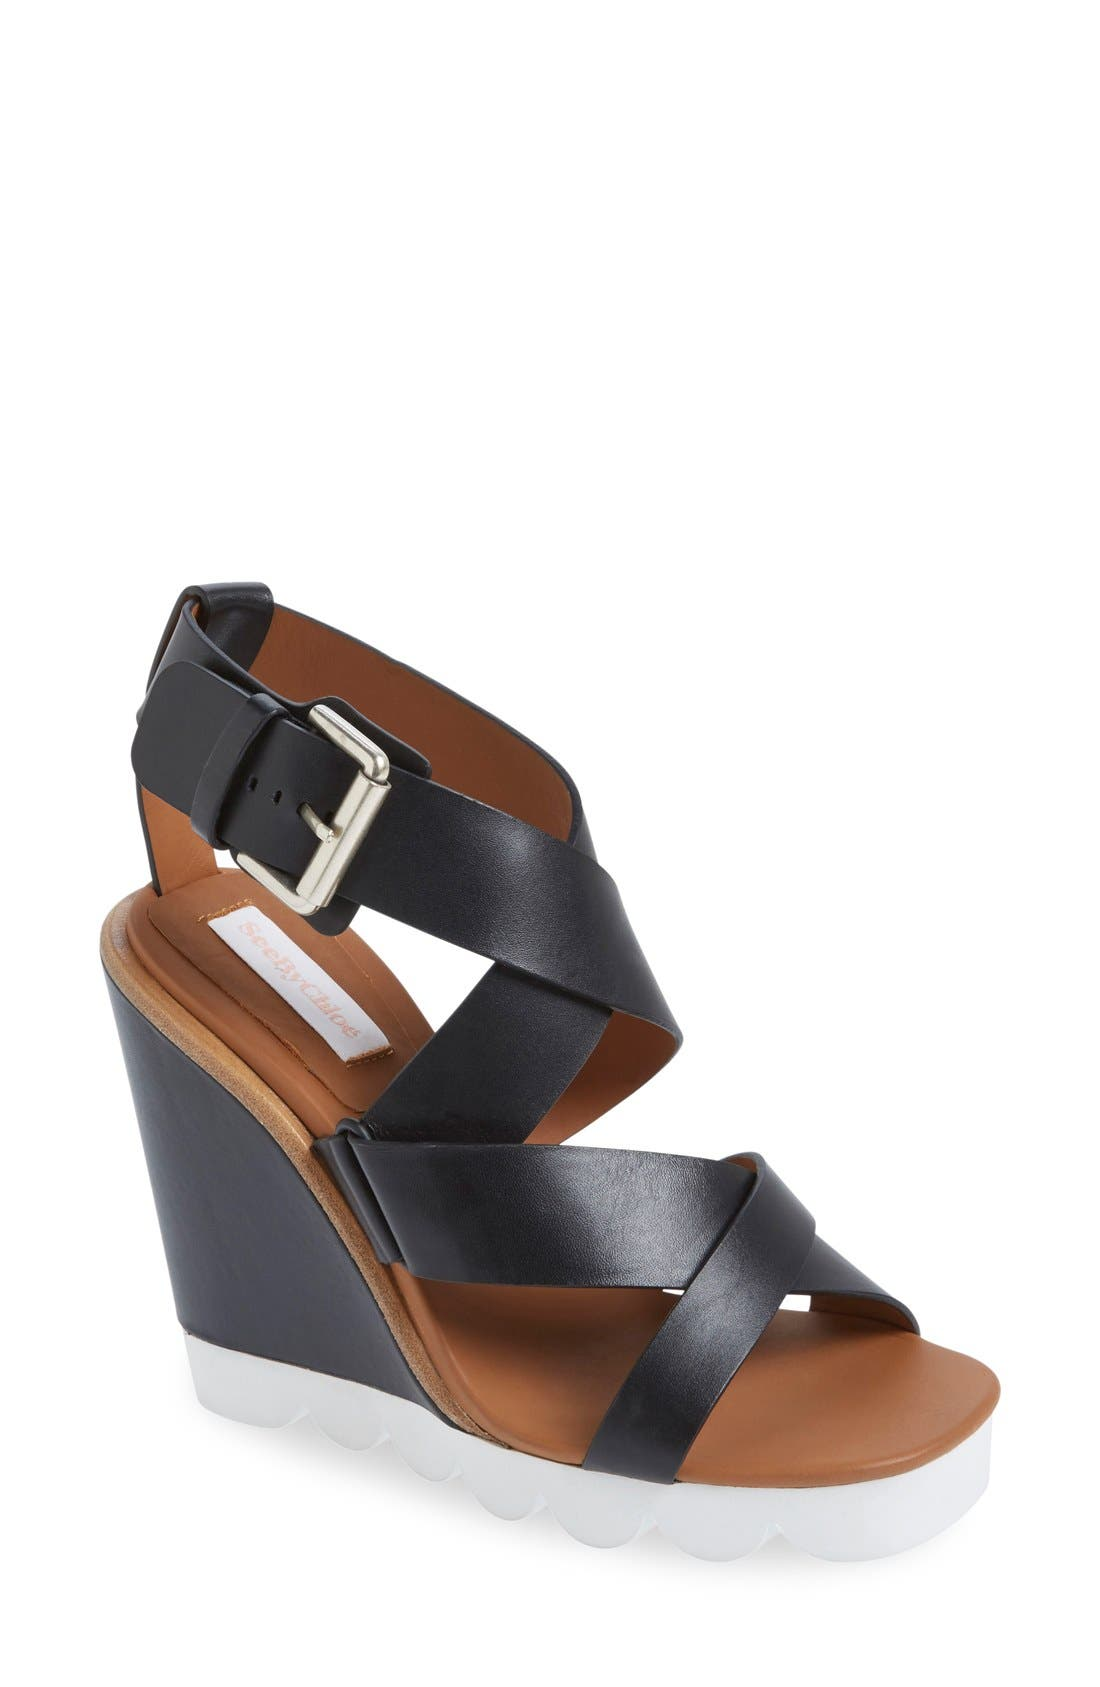 Alternate Image 1 Selected - See by Chloé 'Tiny' Wedge Sandal (Women)